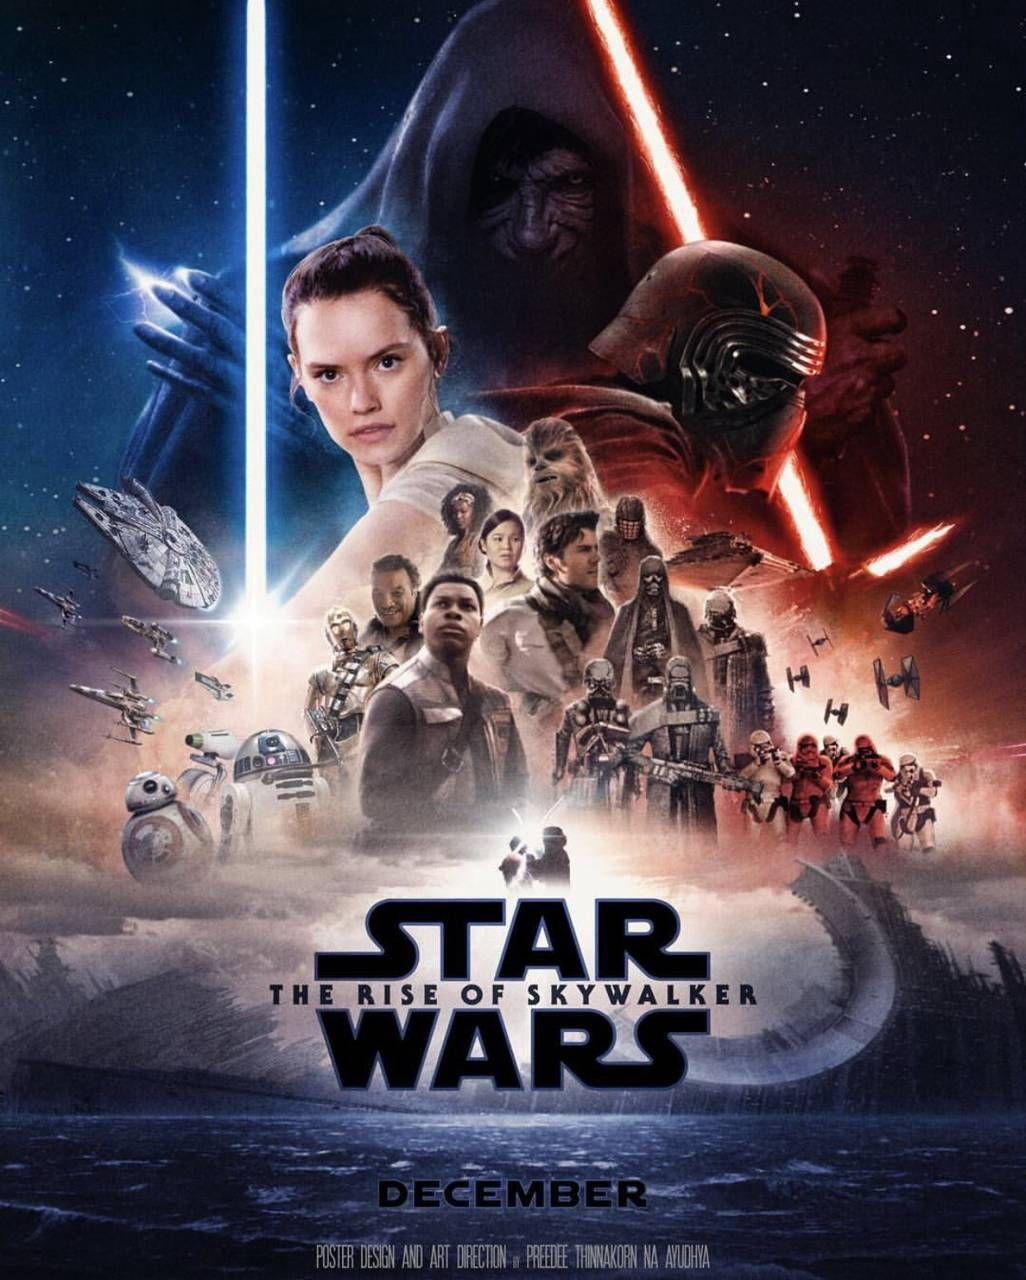 Watch Movies Star Wars Episode Ix The Rise Of Skywalker 2019 Full Movie Streming By Hd Streaming Bana Jul 2020 Medium